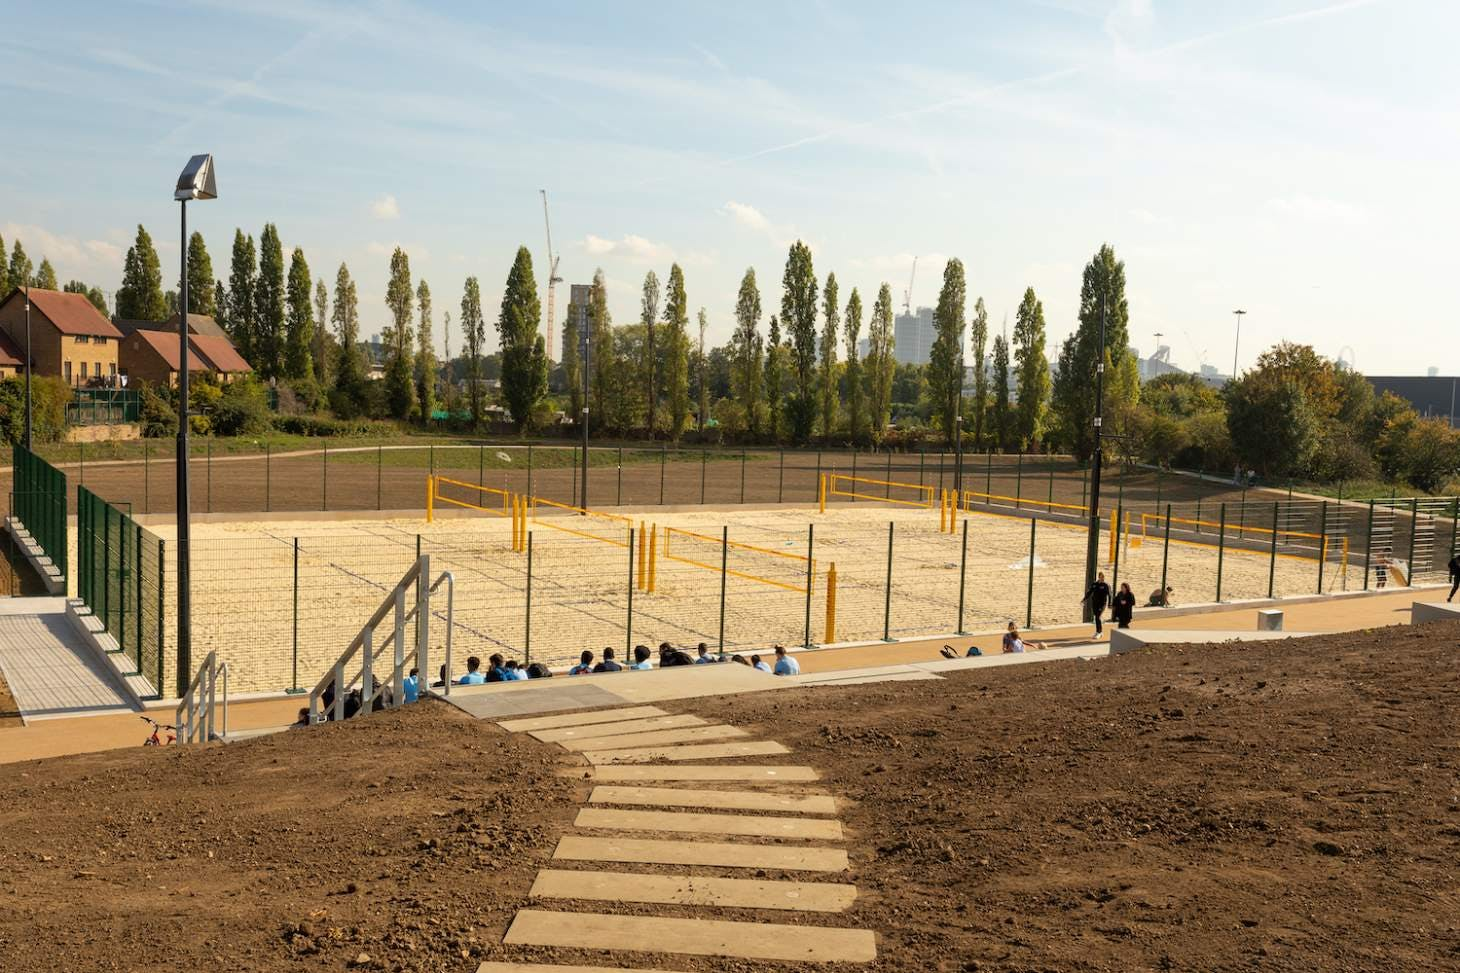 Feel Good Too (formerly Ive Farm Fields) Court | Sand (beach) volleyball court